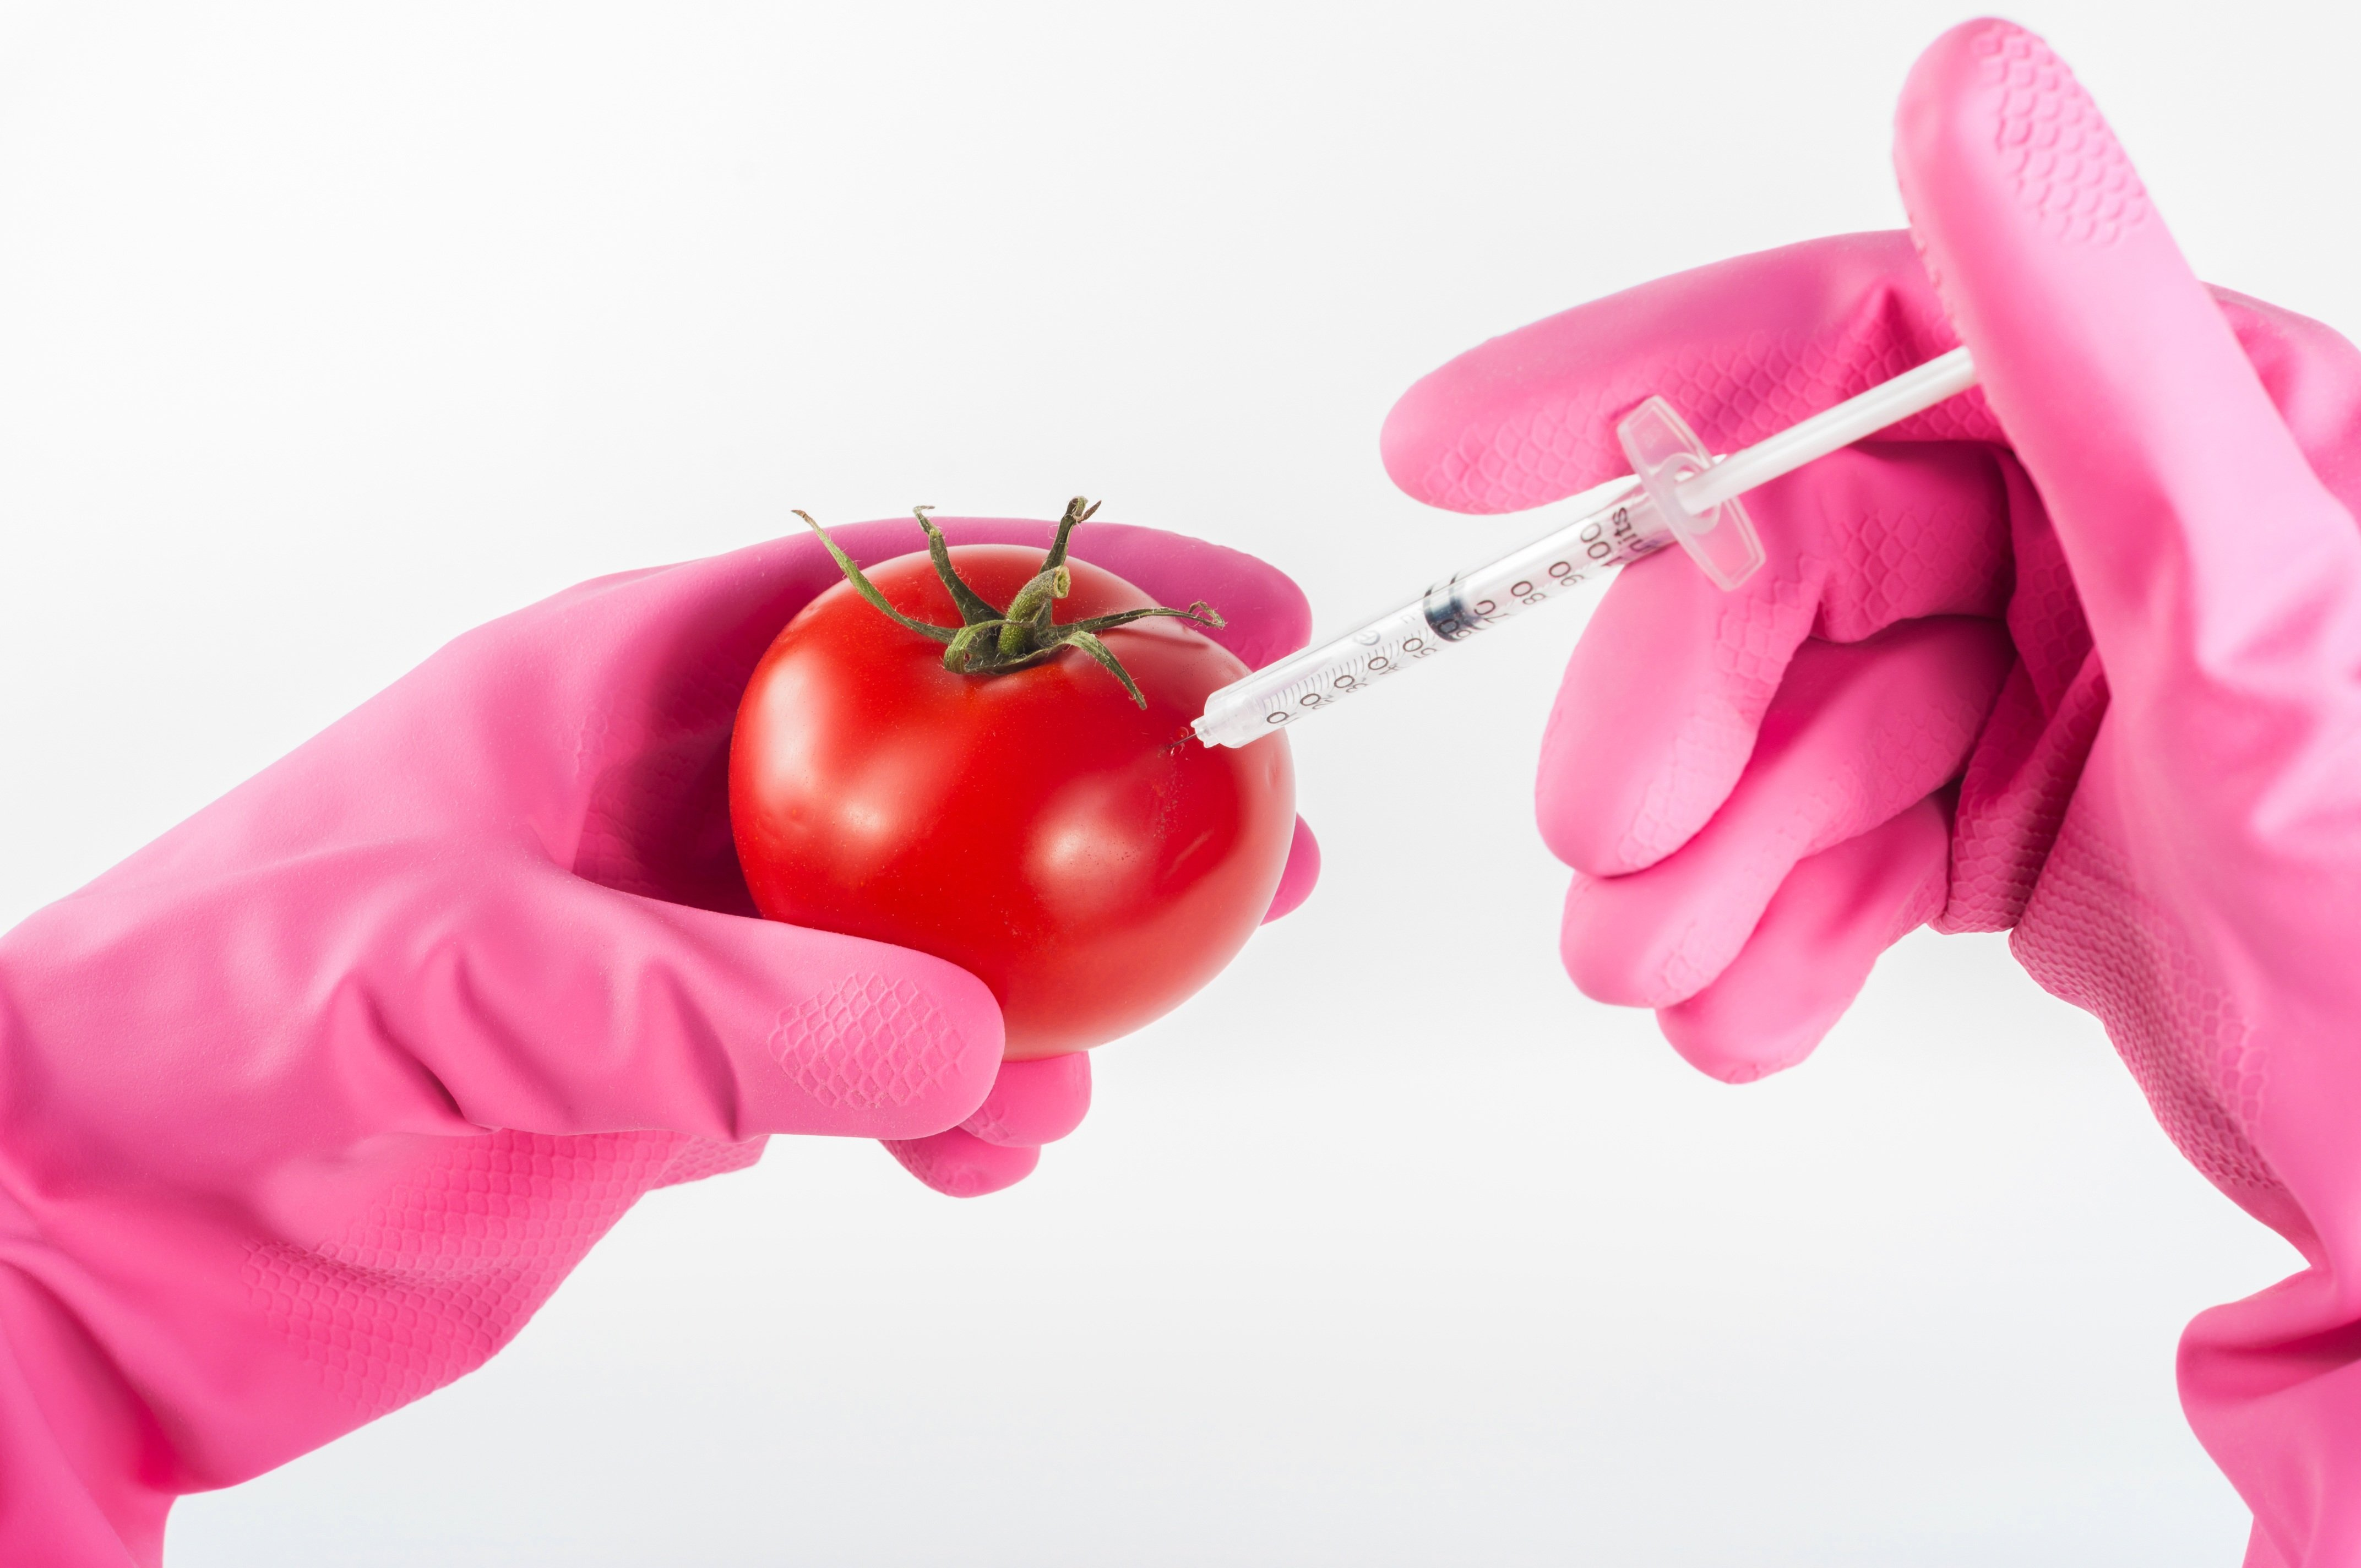 are genetically modified foods safe to Food crops have been genetically modified for several reasons—most of which produce a financial benefit to farmers and the chemical companies that produce the gmos.